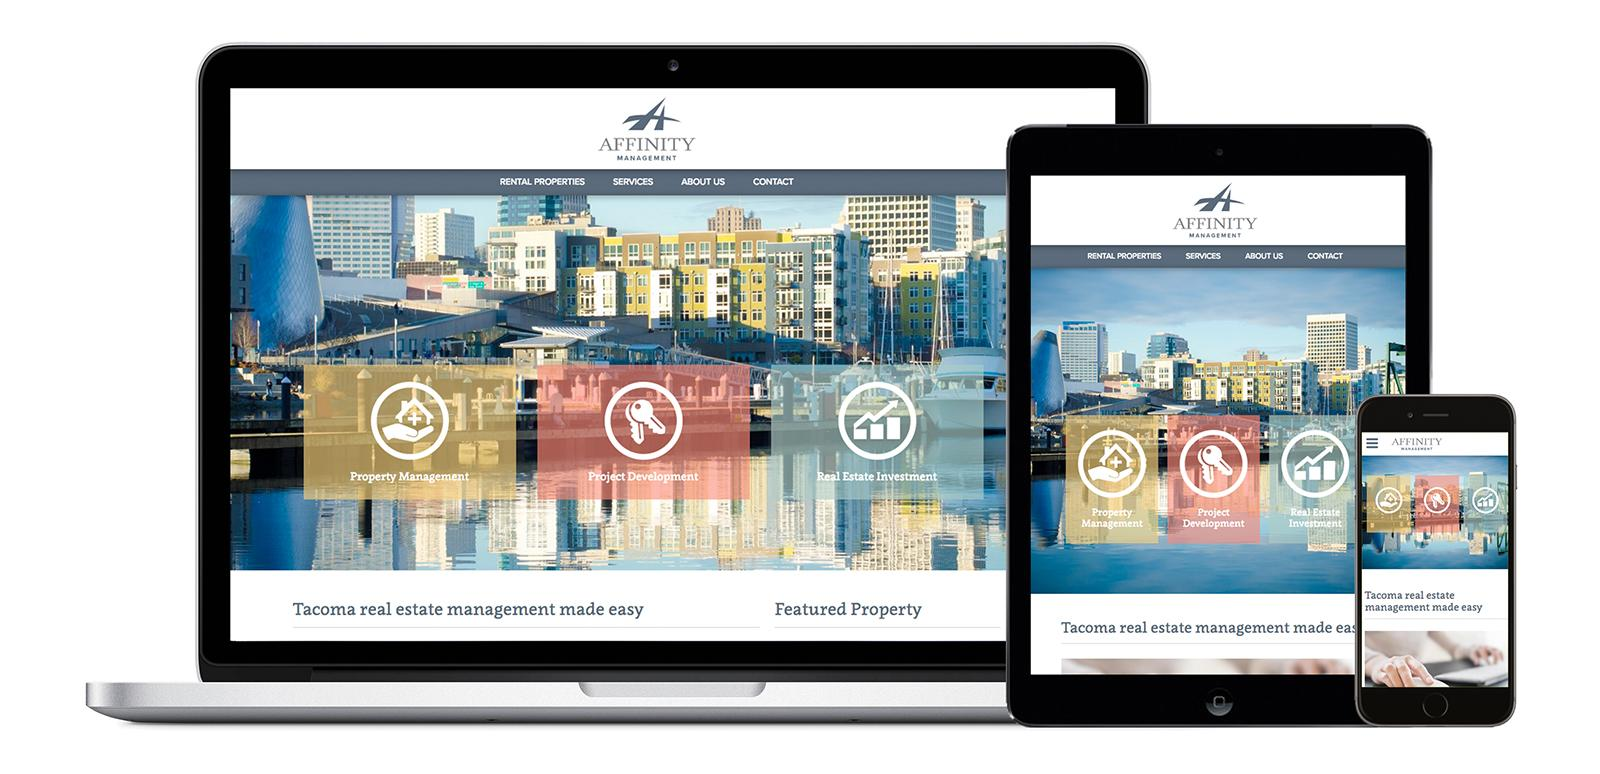 Web design tacoma sample project image, featuring screenshots of Affinity Management